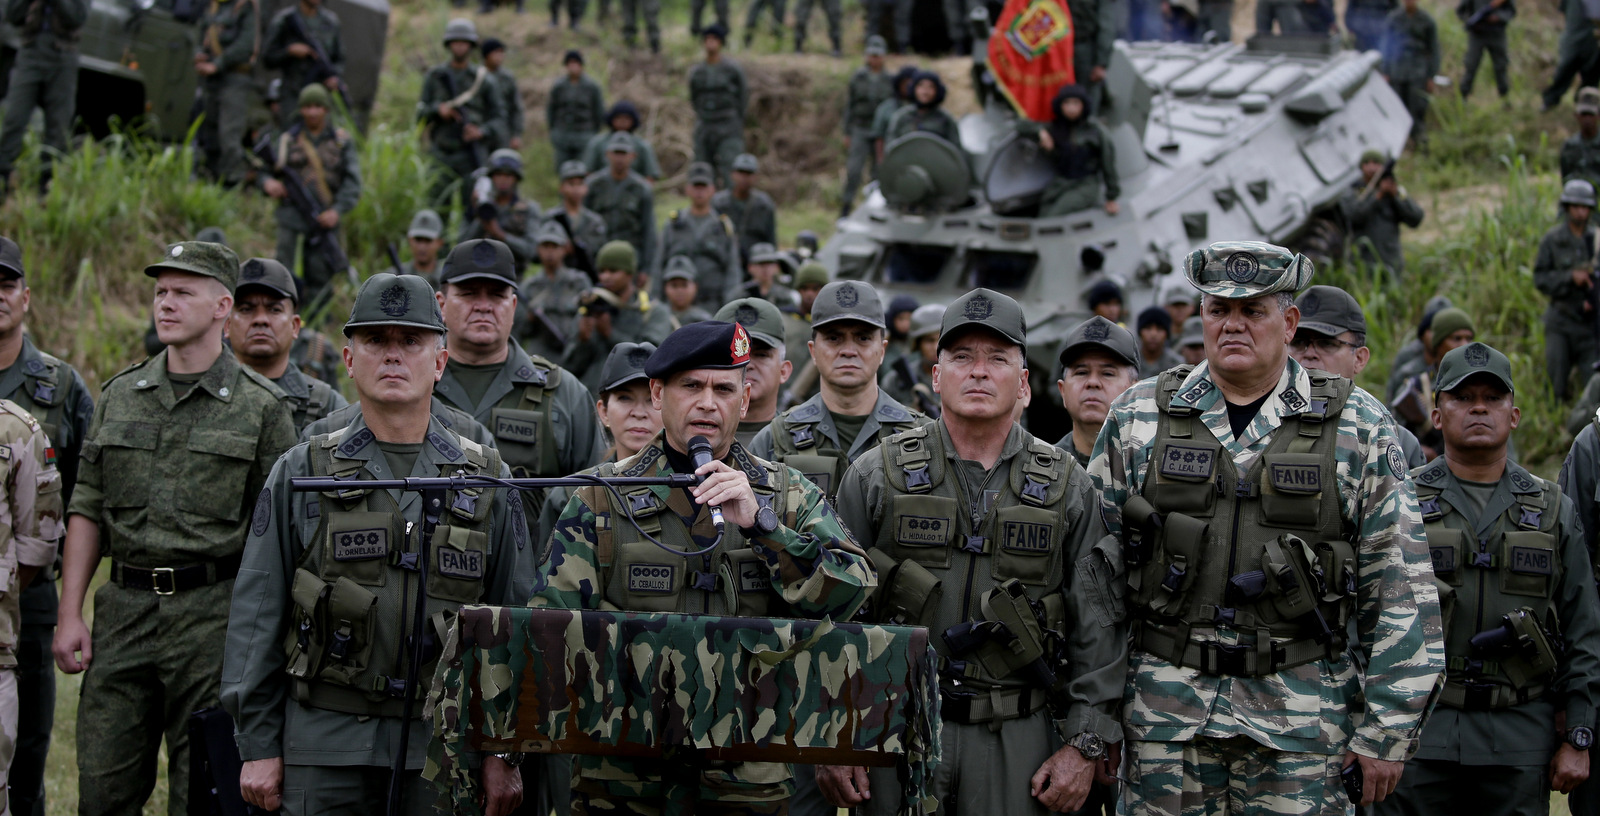 Both Venezuela and the US are Preparing for an Impending Conflict